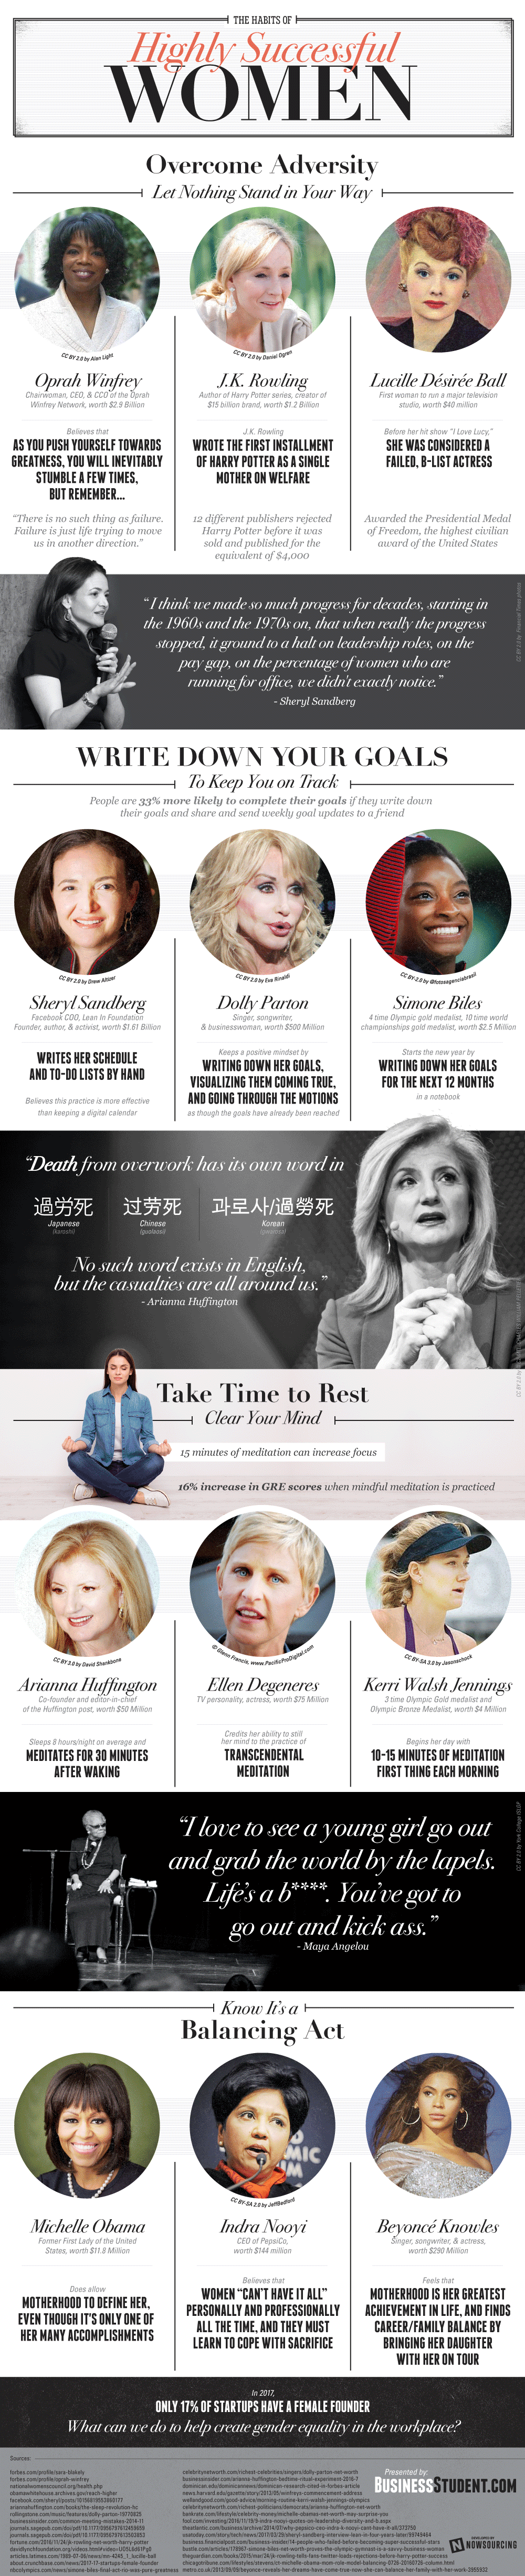 habits-of-highly-sucessful-women-1.png